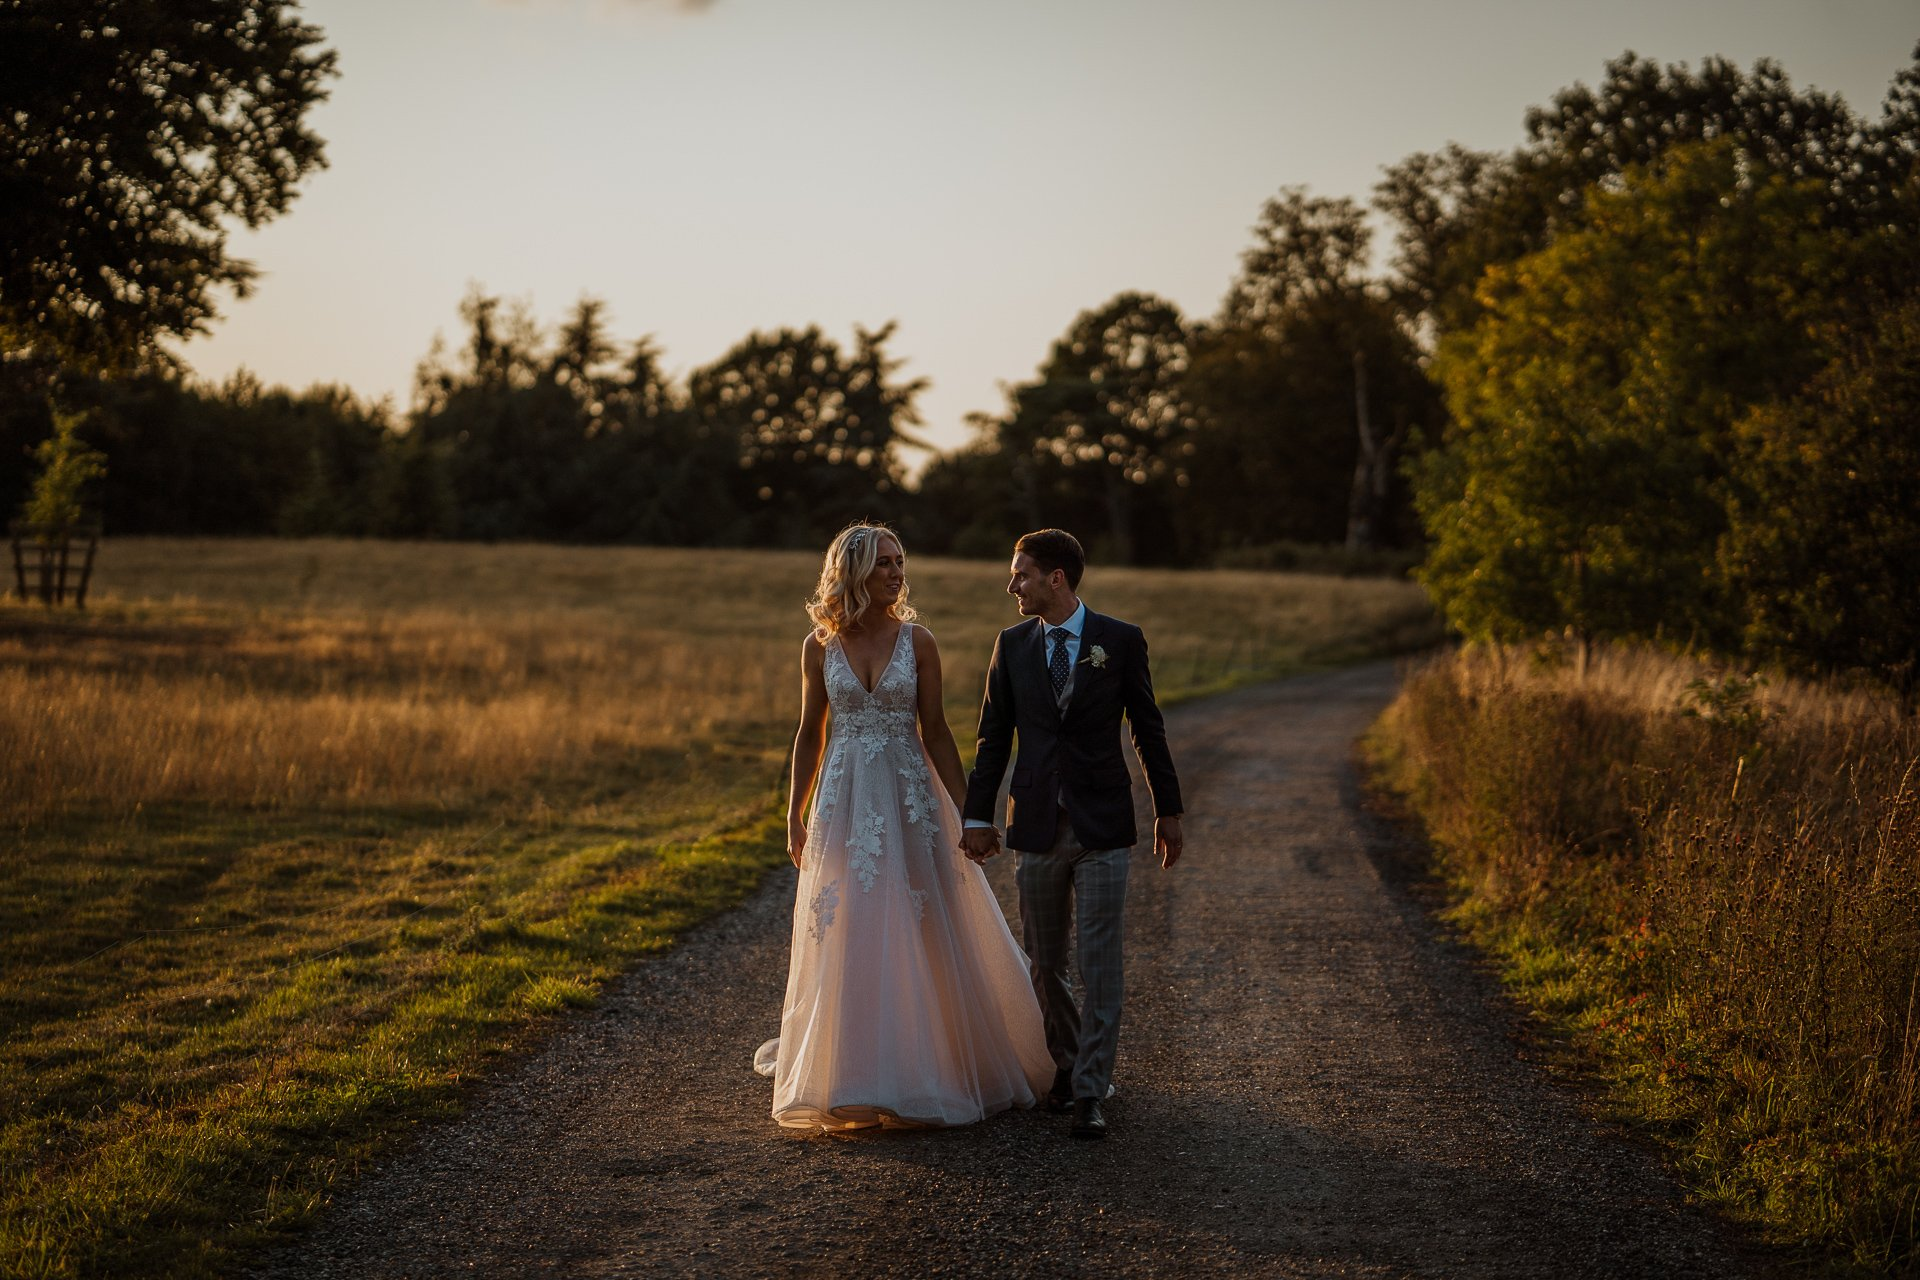 Bride and Groom walking together after their wedding at sunset